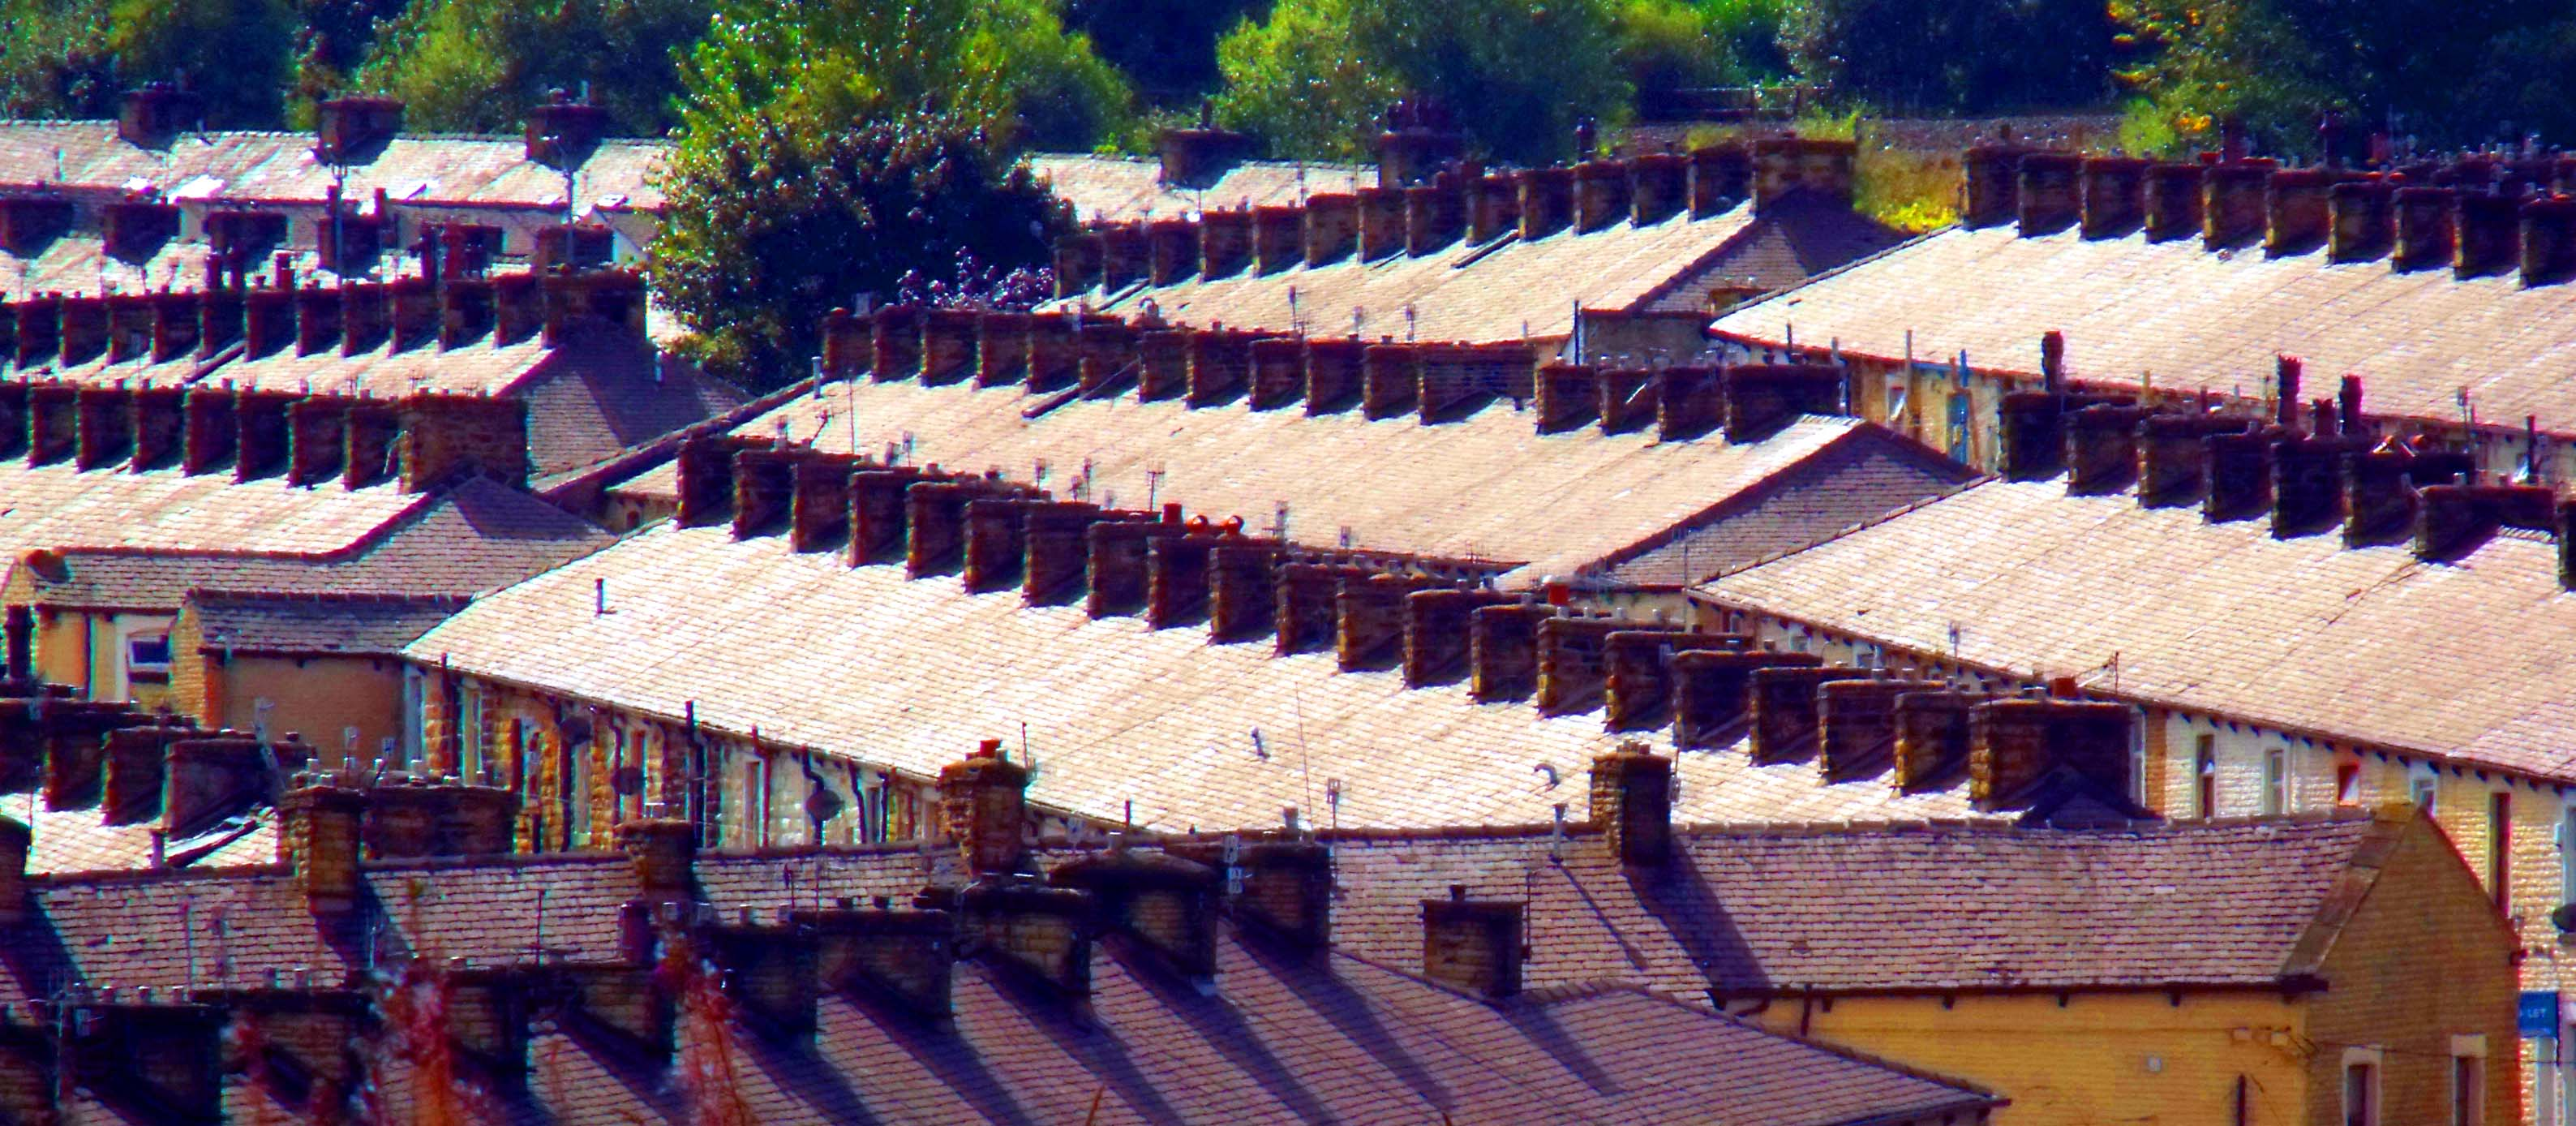 Burnley,roof,roofs,terrace,terraced,houses,lancs,lancashire,UK,England,old,365days,hotpix!